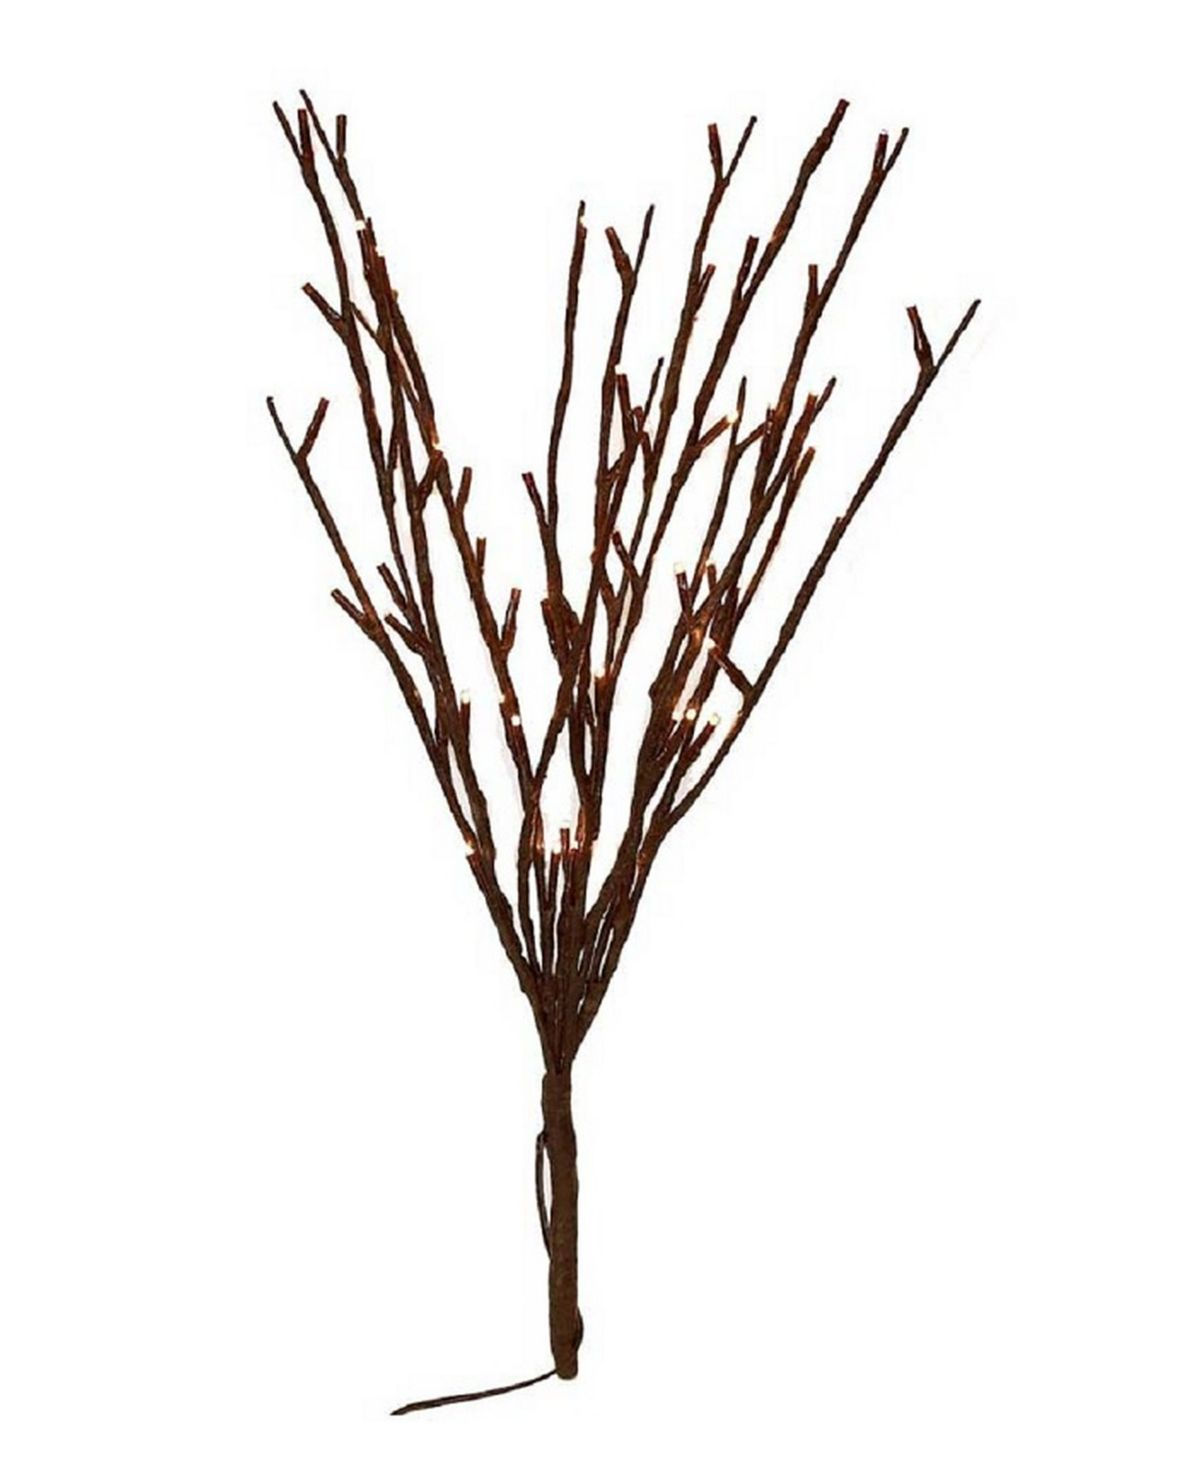 Enjoy the beauty of these illuminated branches all year long. This set features 60 warm-white Led bulbs on a moldable stem, delicately coated in a dark brown wrap mimicking a natural branch. Perfect for parties, weddings or as a unique accent for any decor.